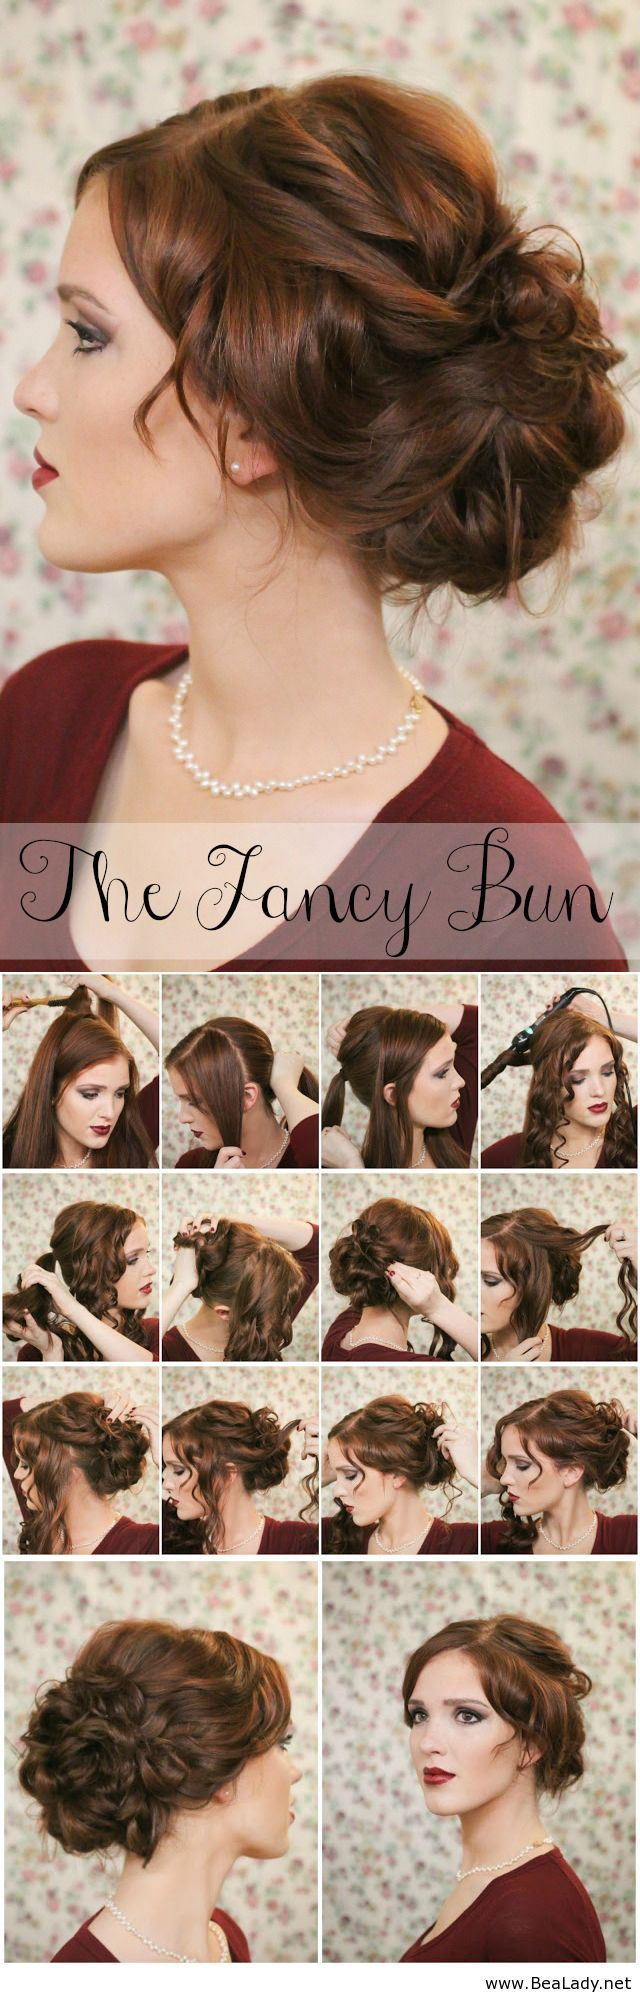 #flowersinhair~ for bridal party too  because their hair will be in a fancy updo not down, my hair will be down :)